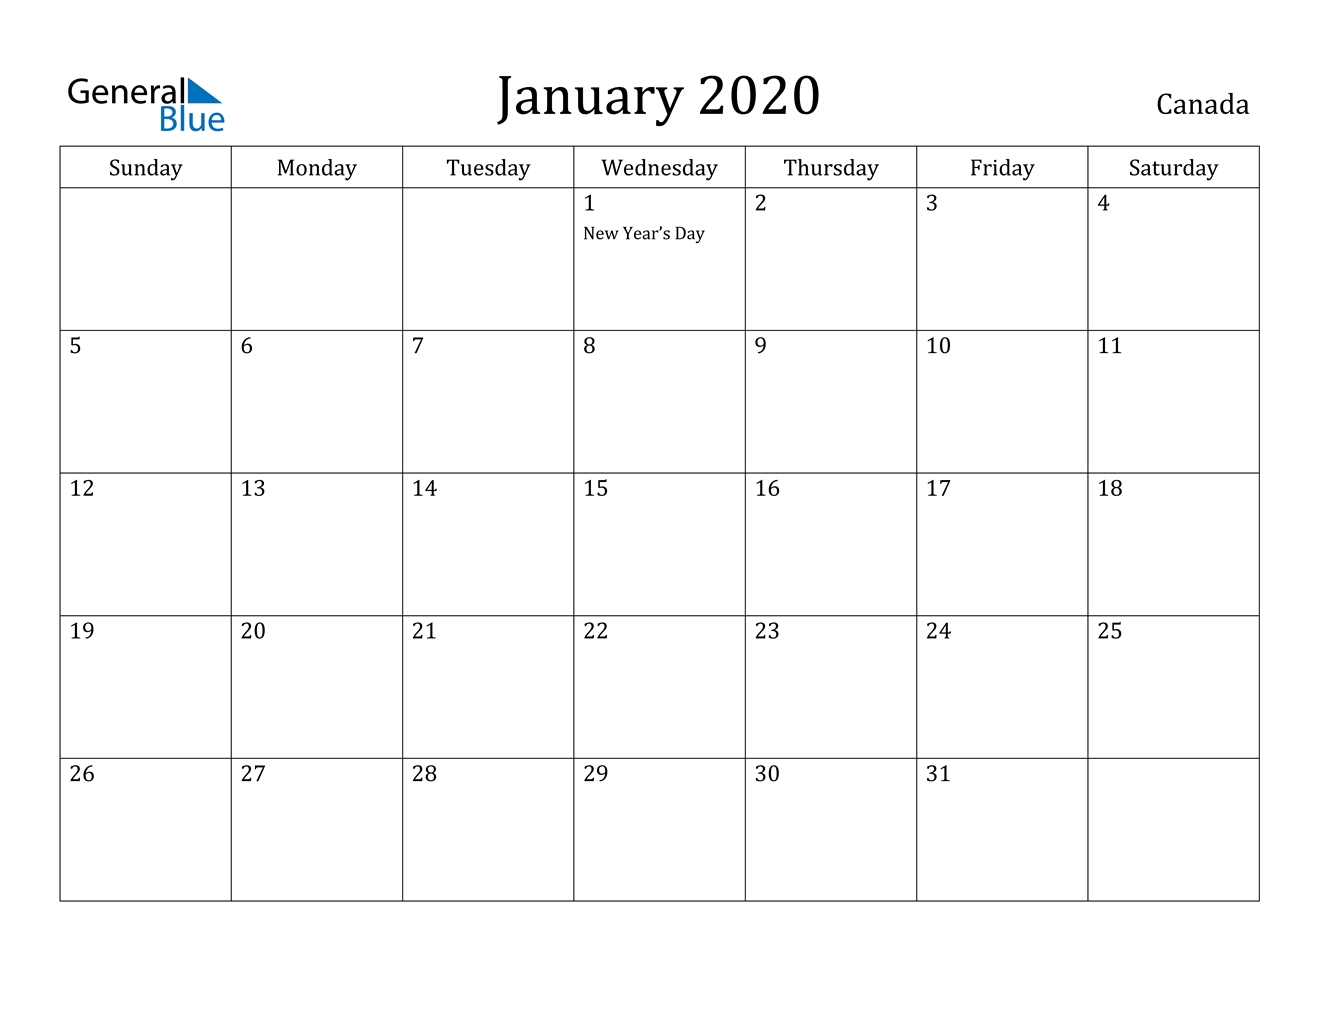 January 2020 Calendar - Canada Extraordinary January 2020 Printable Calendar Canada